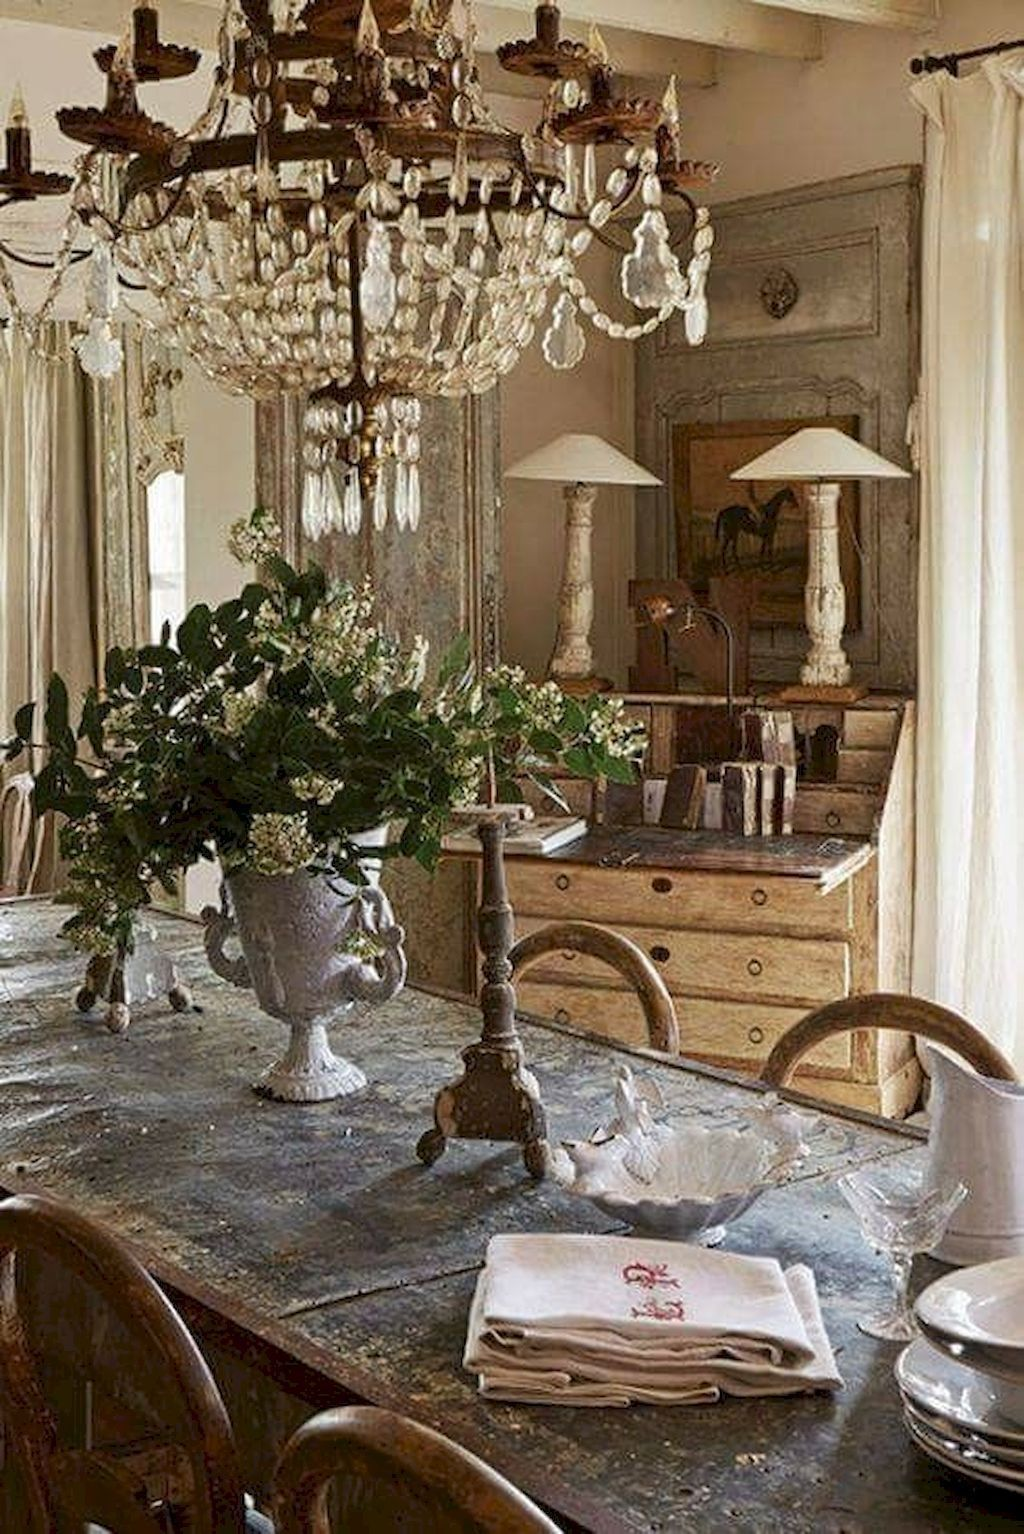 47 Cozy Country Dining Room Decorating Ideas French Country